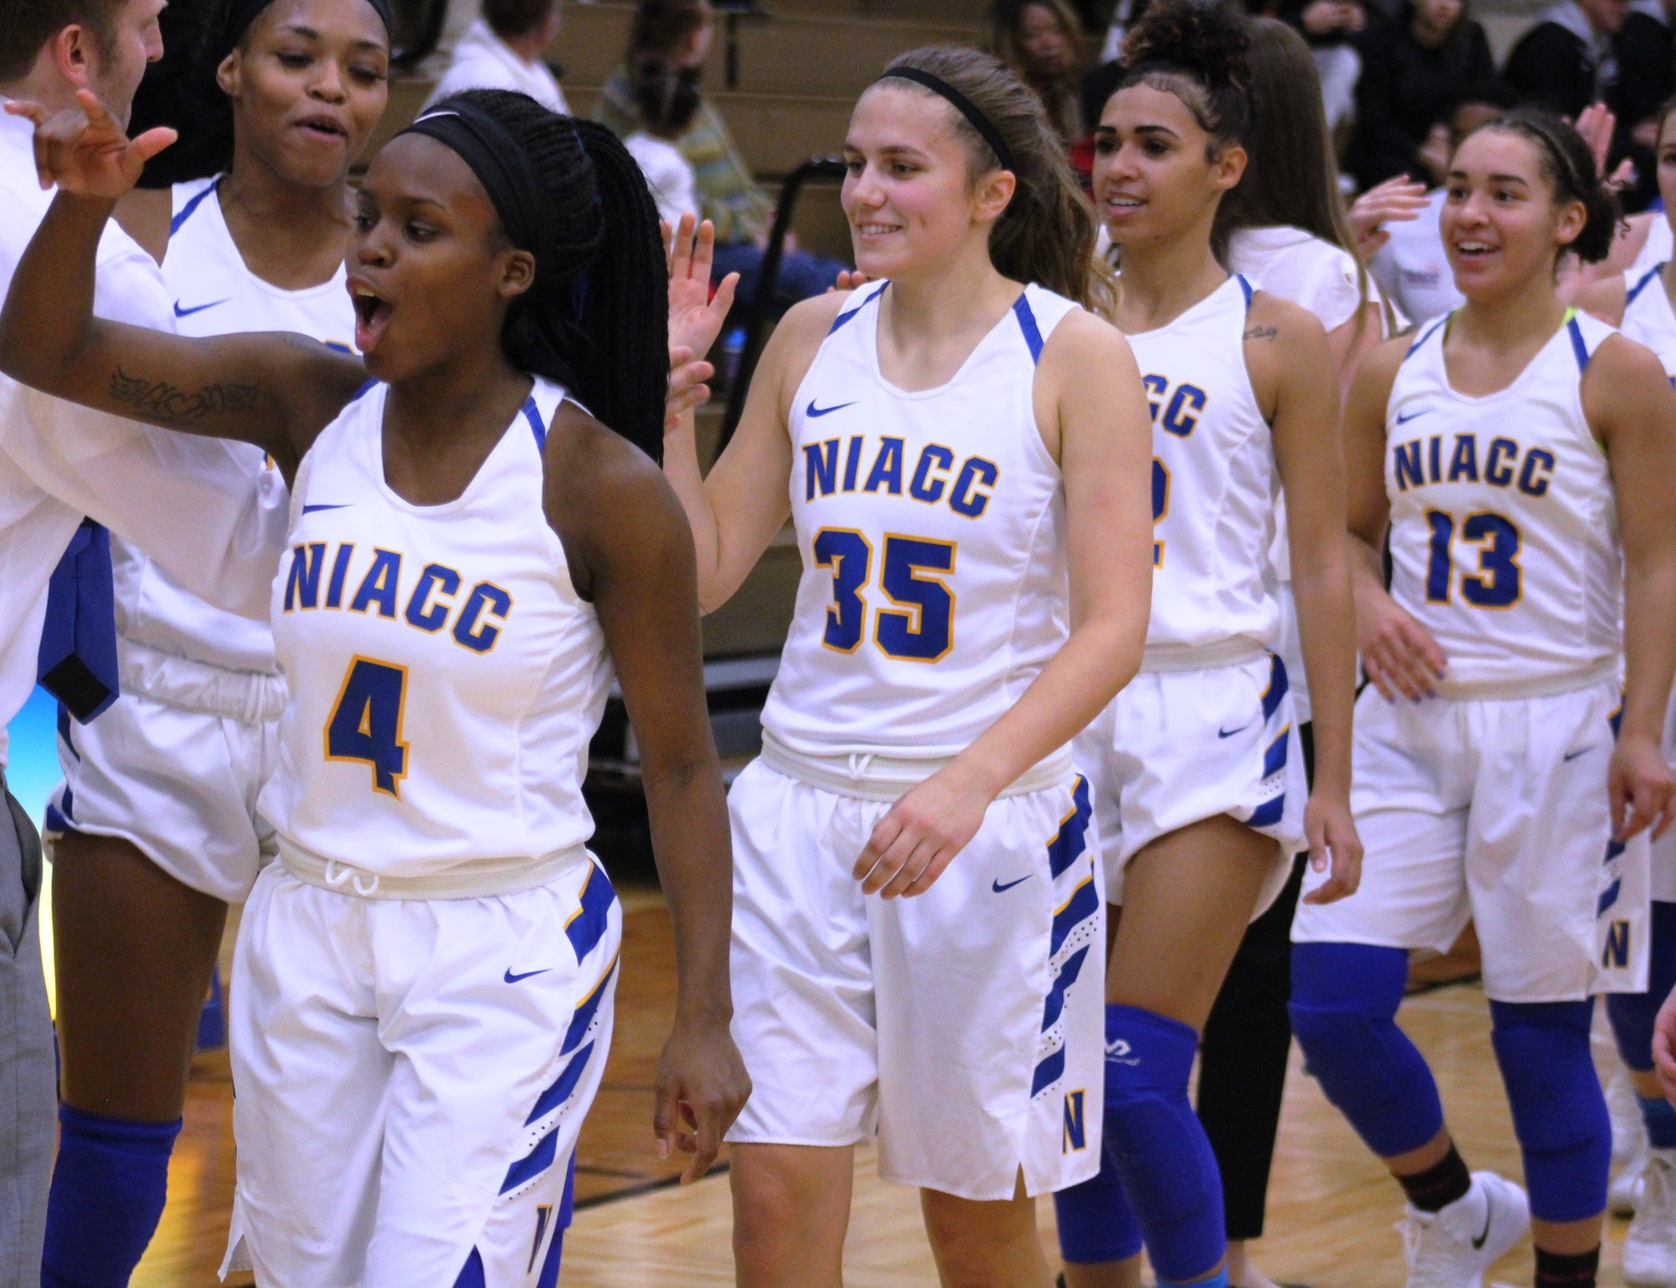 NIACC players are all smiles after Saturday's 98-89 win over Iowa Western in the NIACC gym.